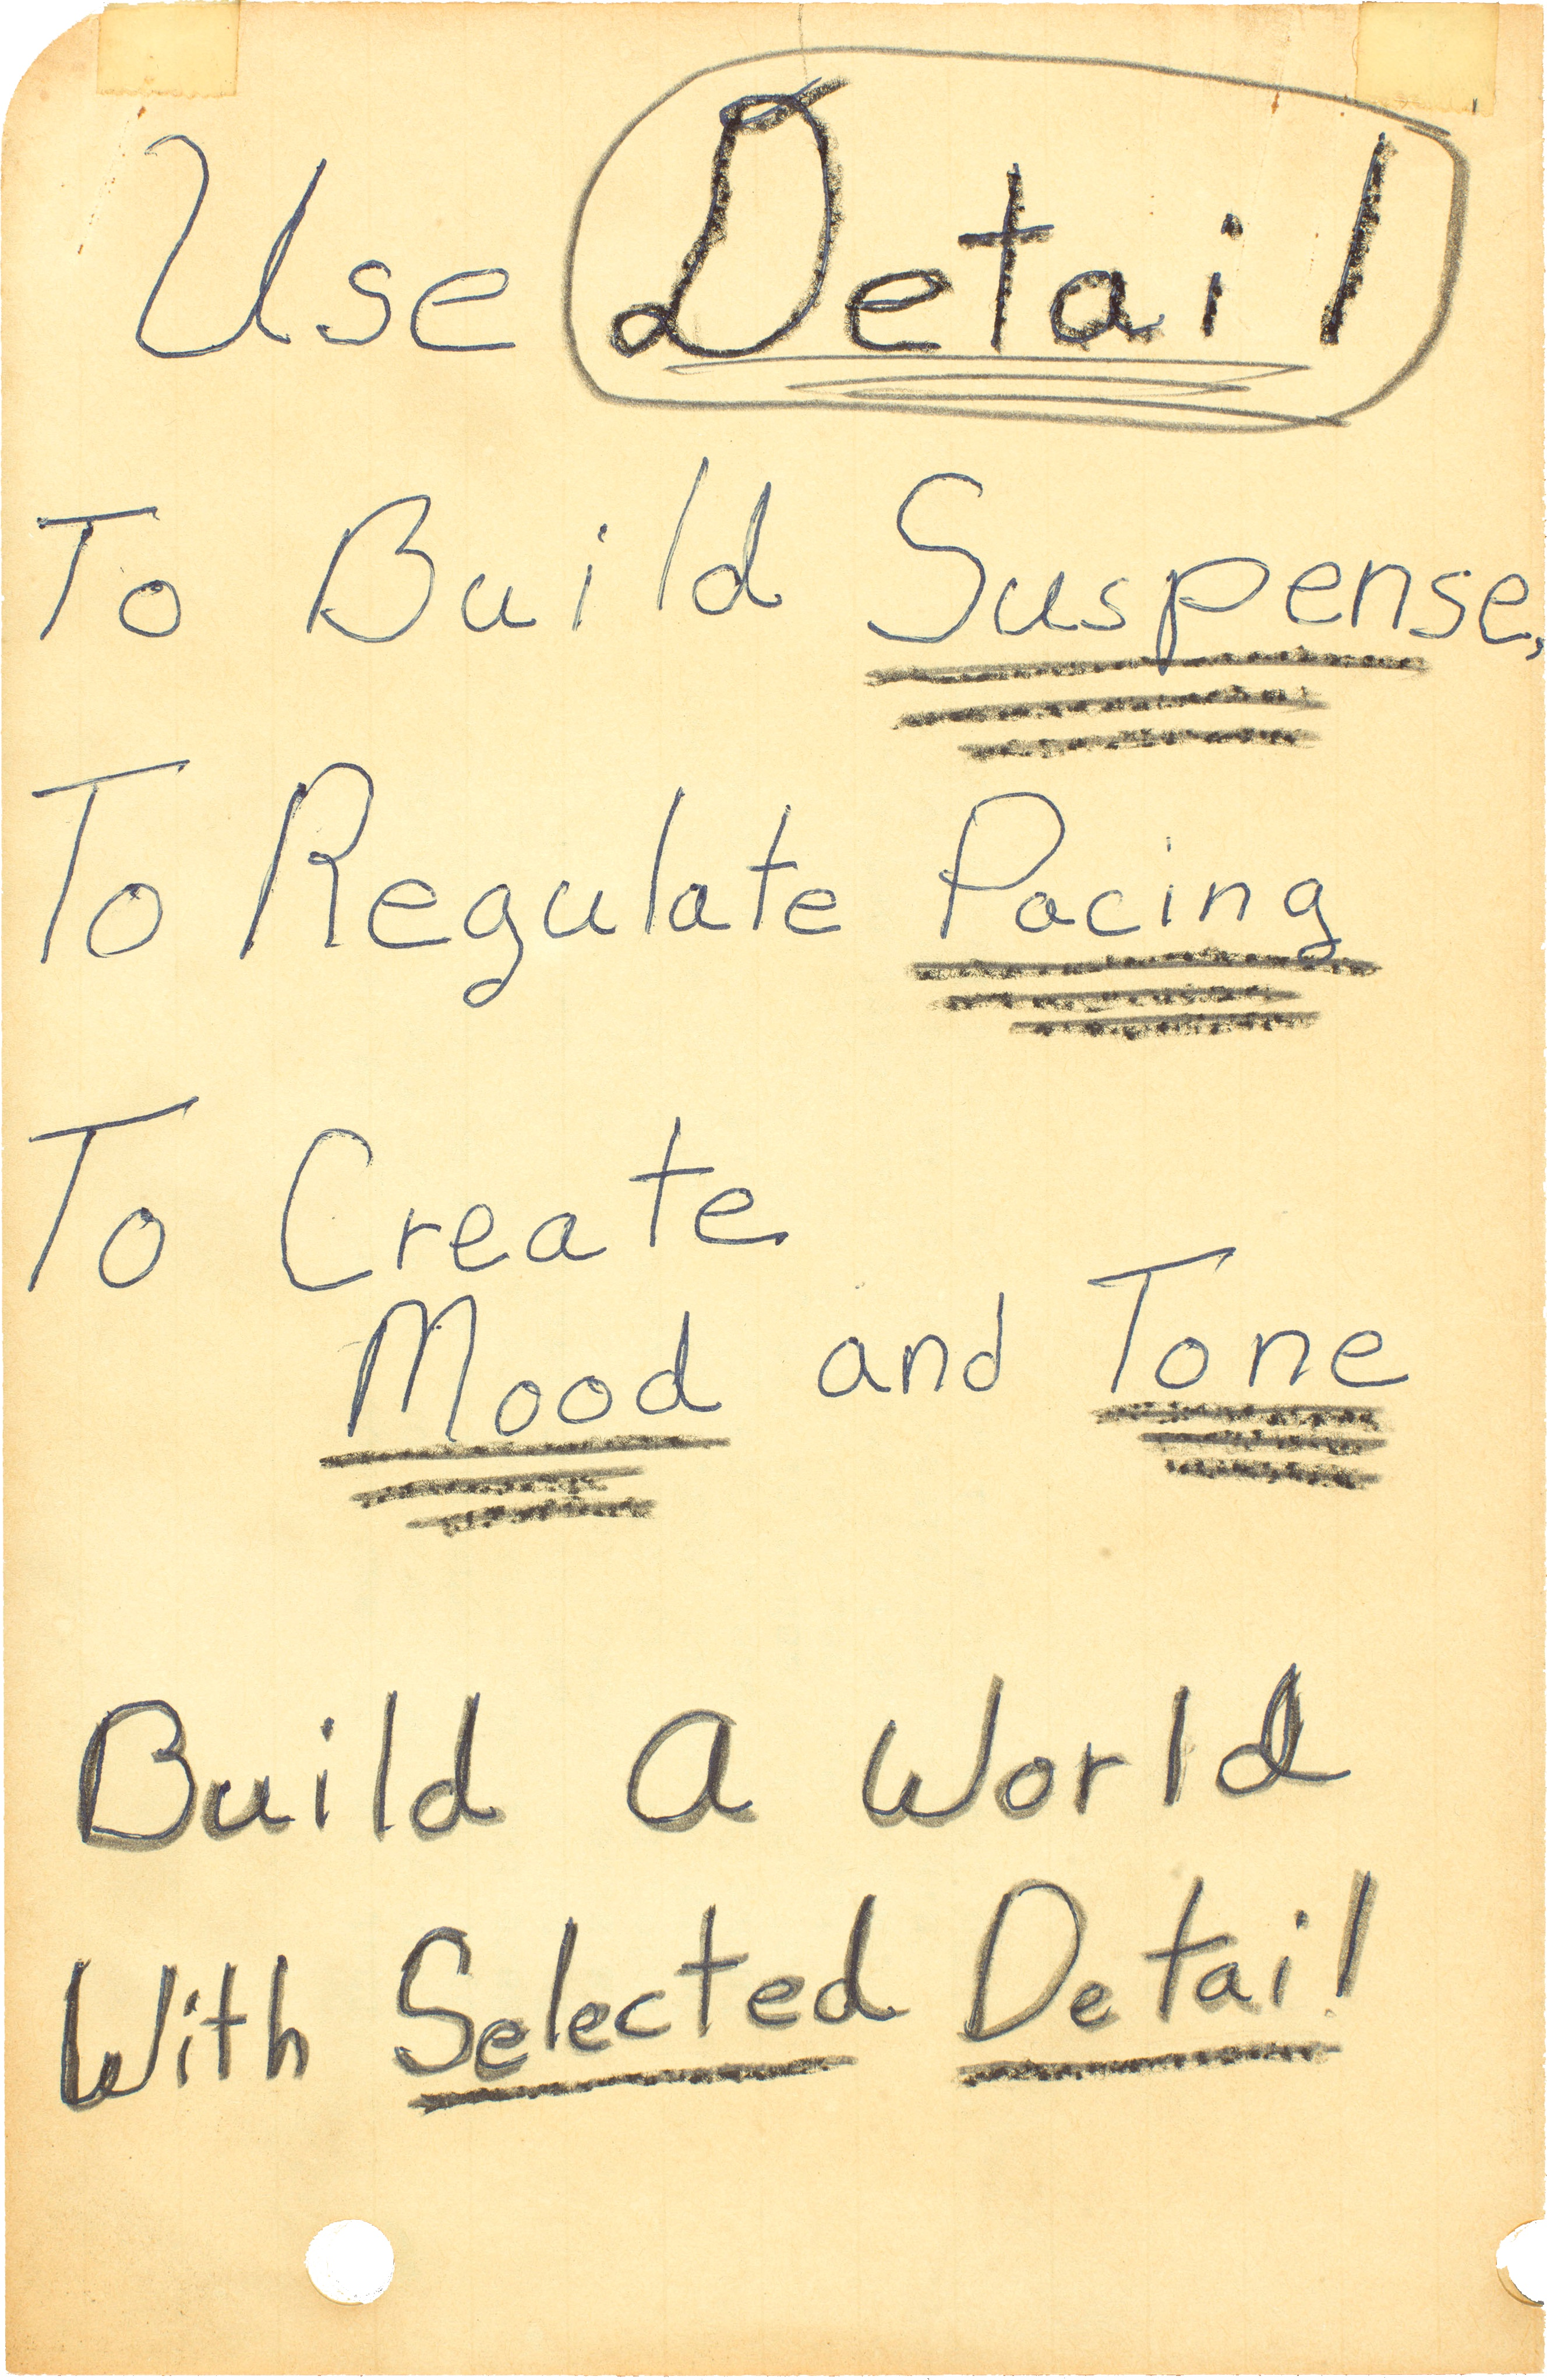 """One of Octavia E. Butler's notes to herself, it reads: """"Use Detail to build suspense to regulate pacing to create mood and tone. Build a world with selected detail."""""""